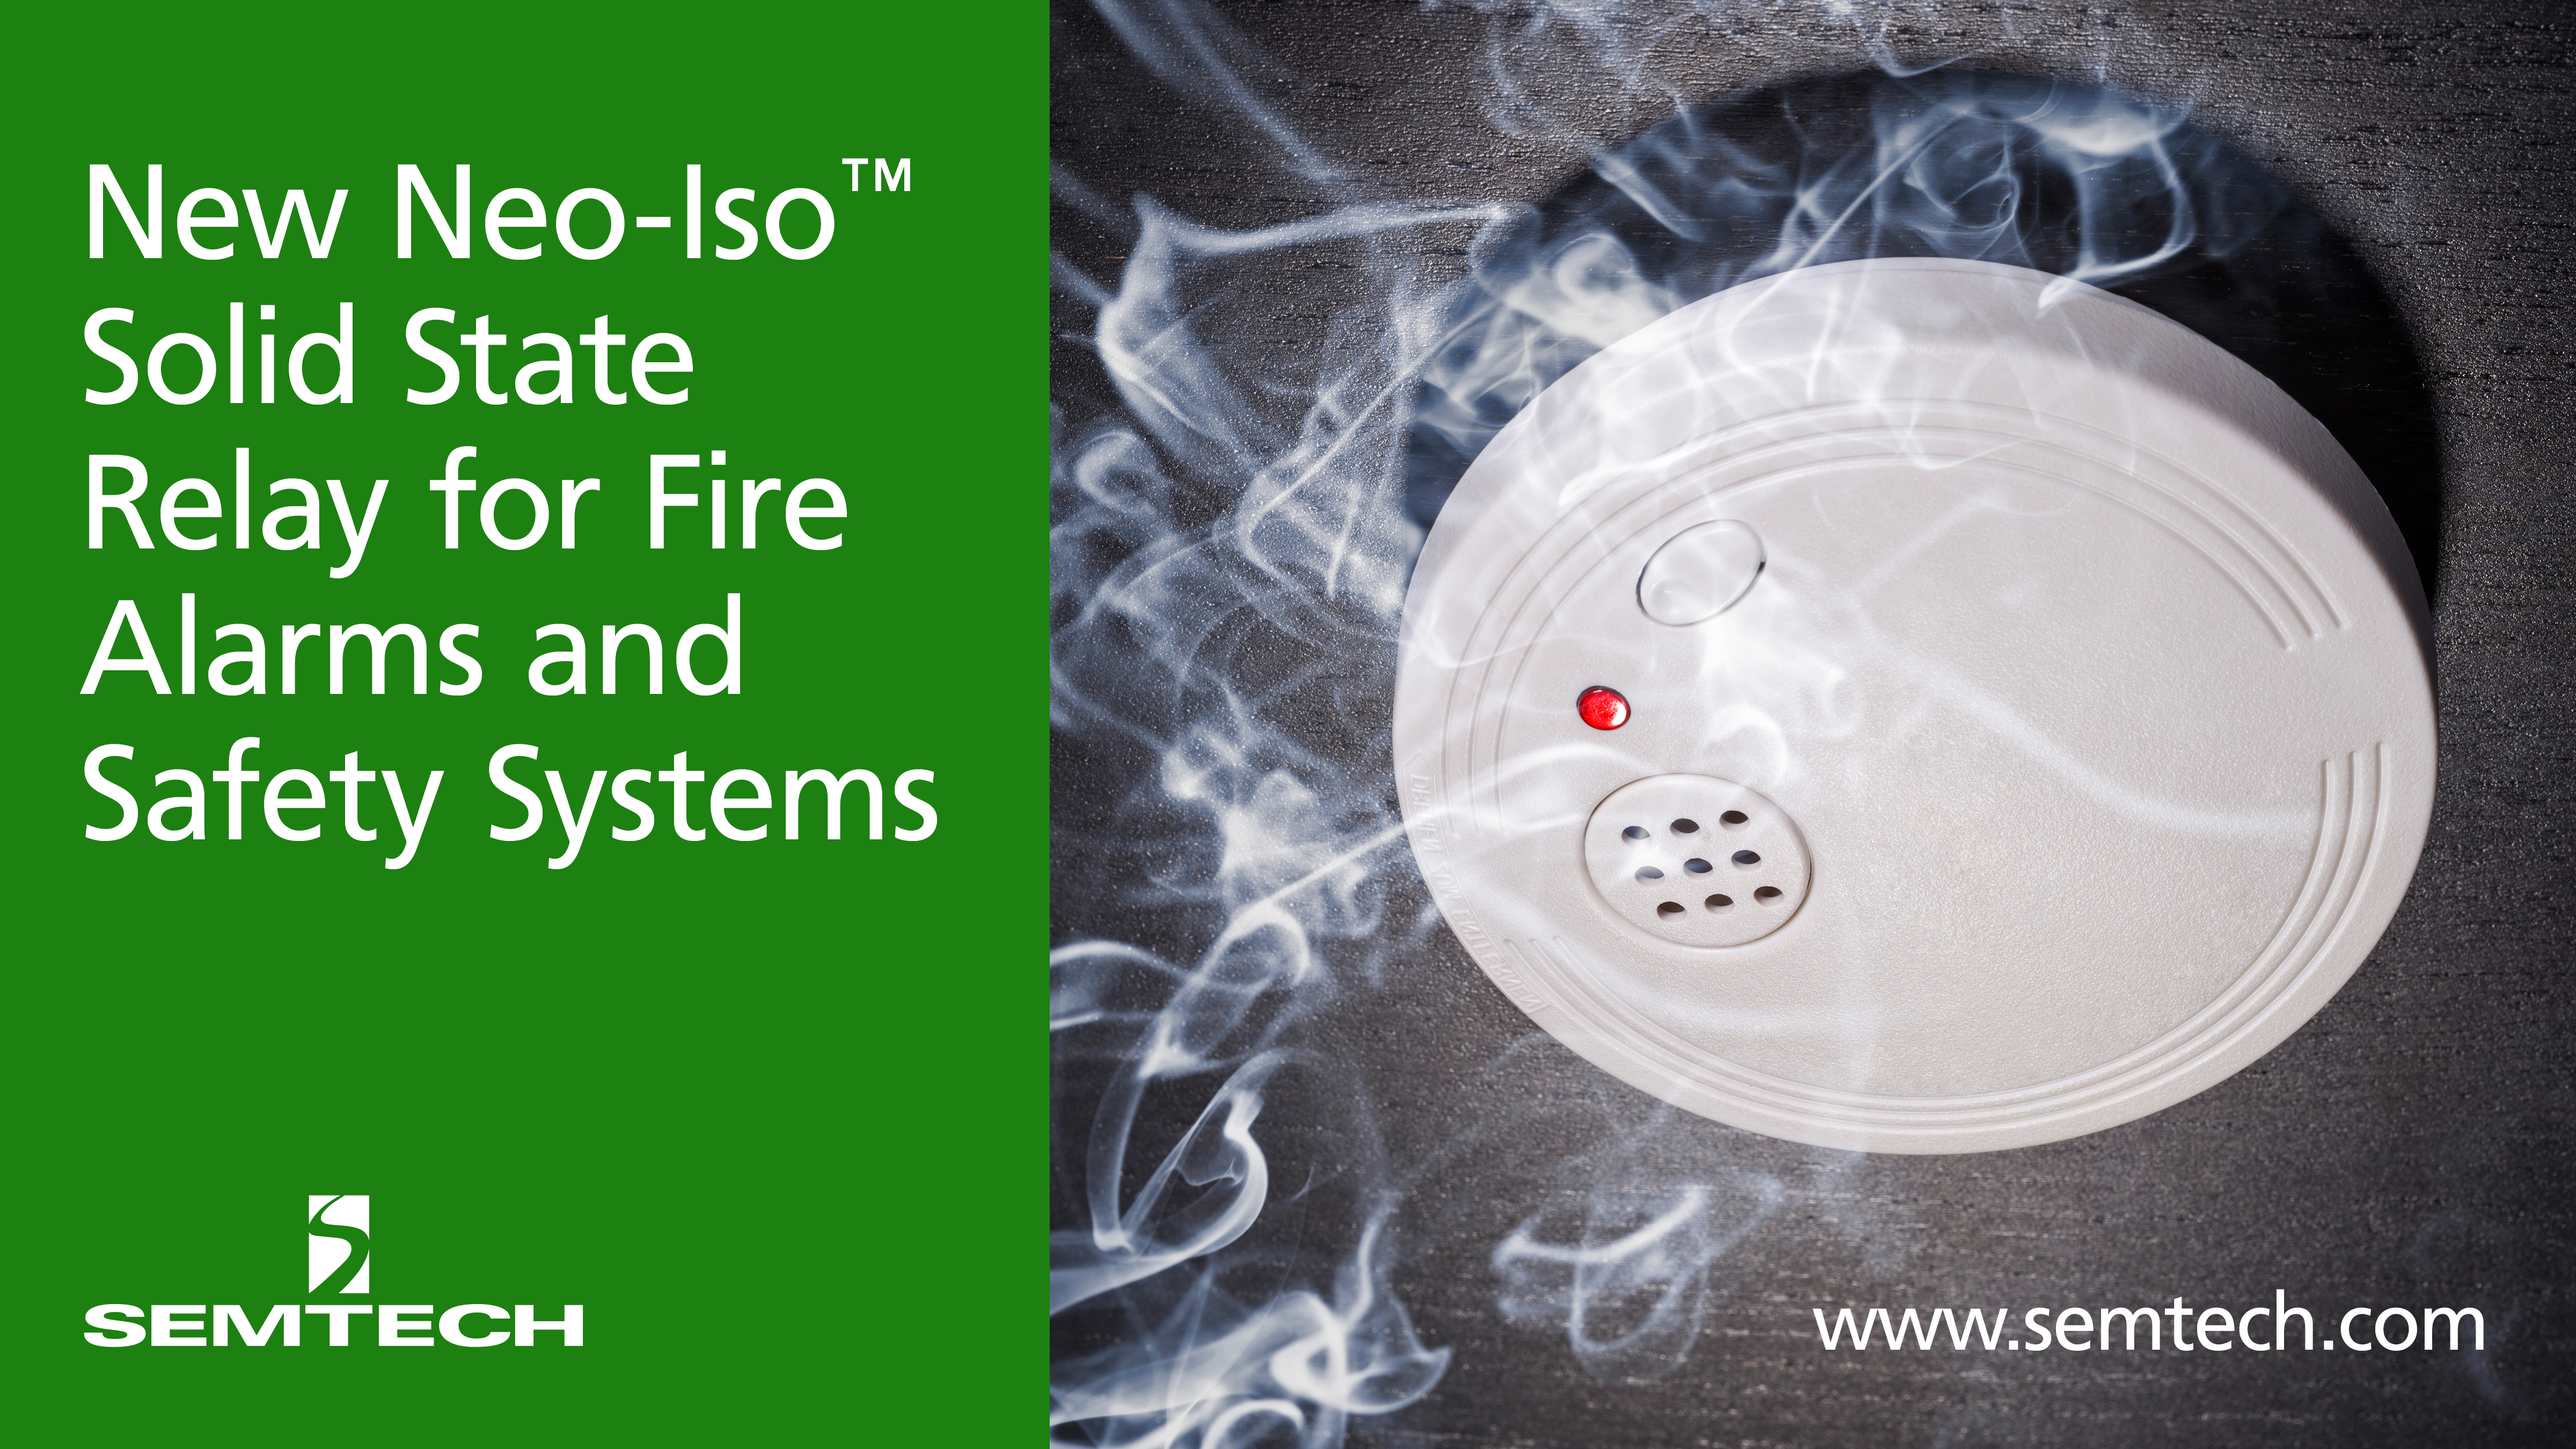 Semtech Releases New Neo Iso Solid State Relay For Fire Alarms And Opto 22 Safety Systems Business Wire